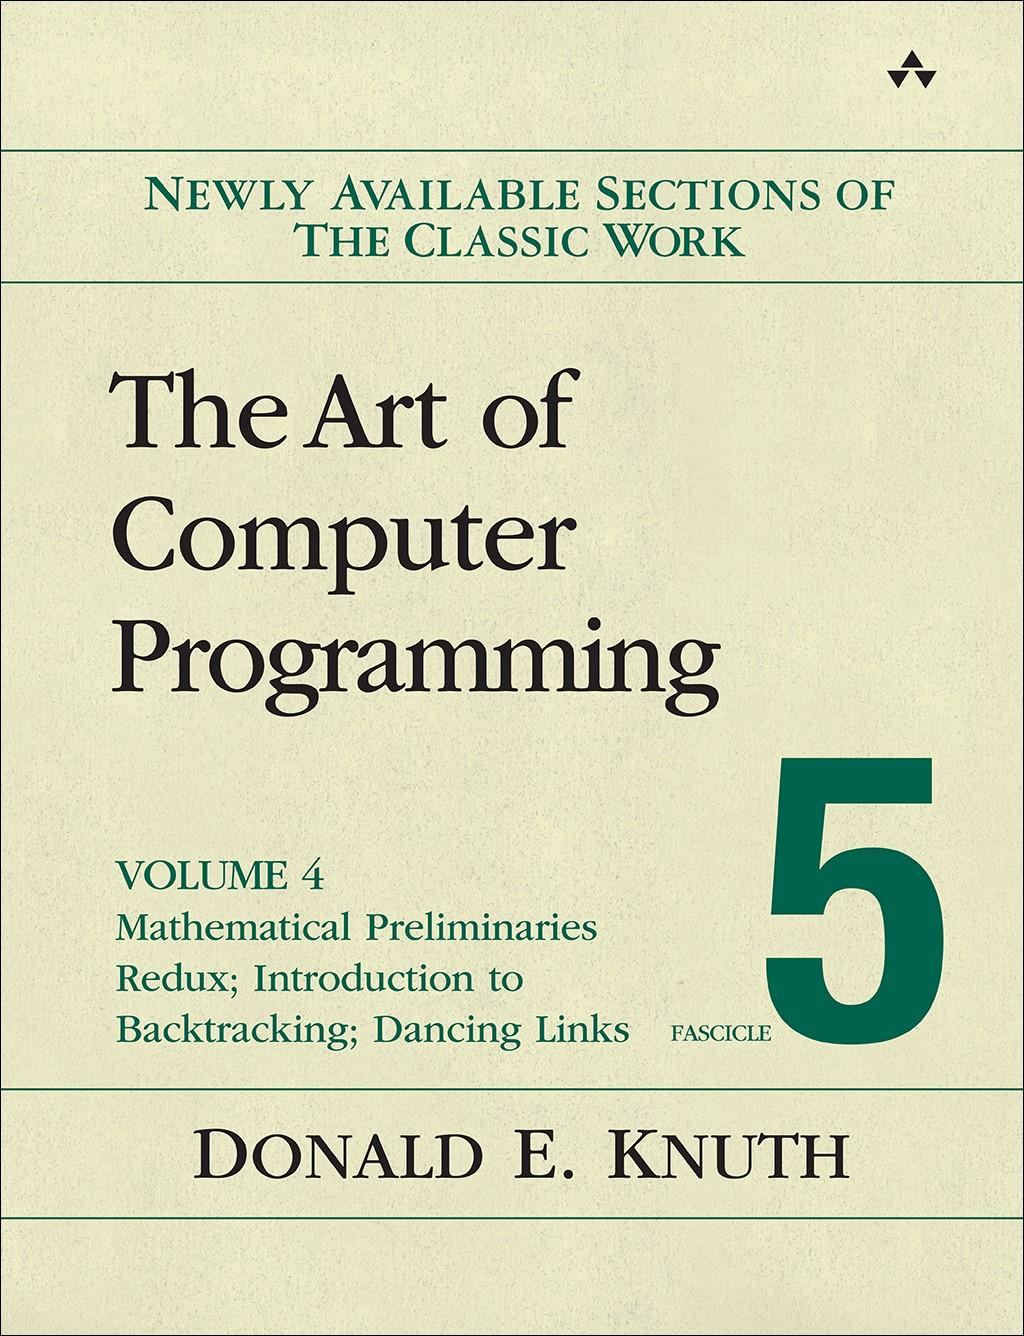 About The Art Of Puter Programming Volume 4 Fascicle 5